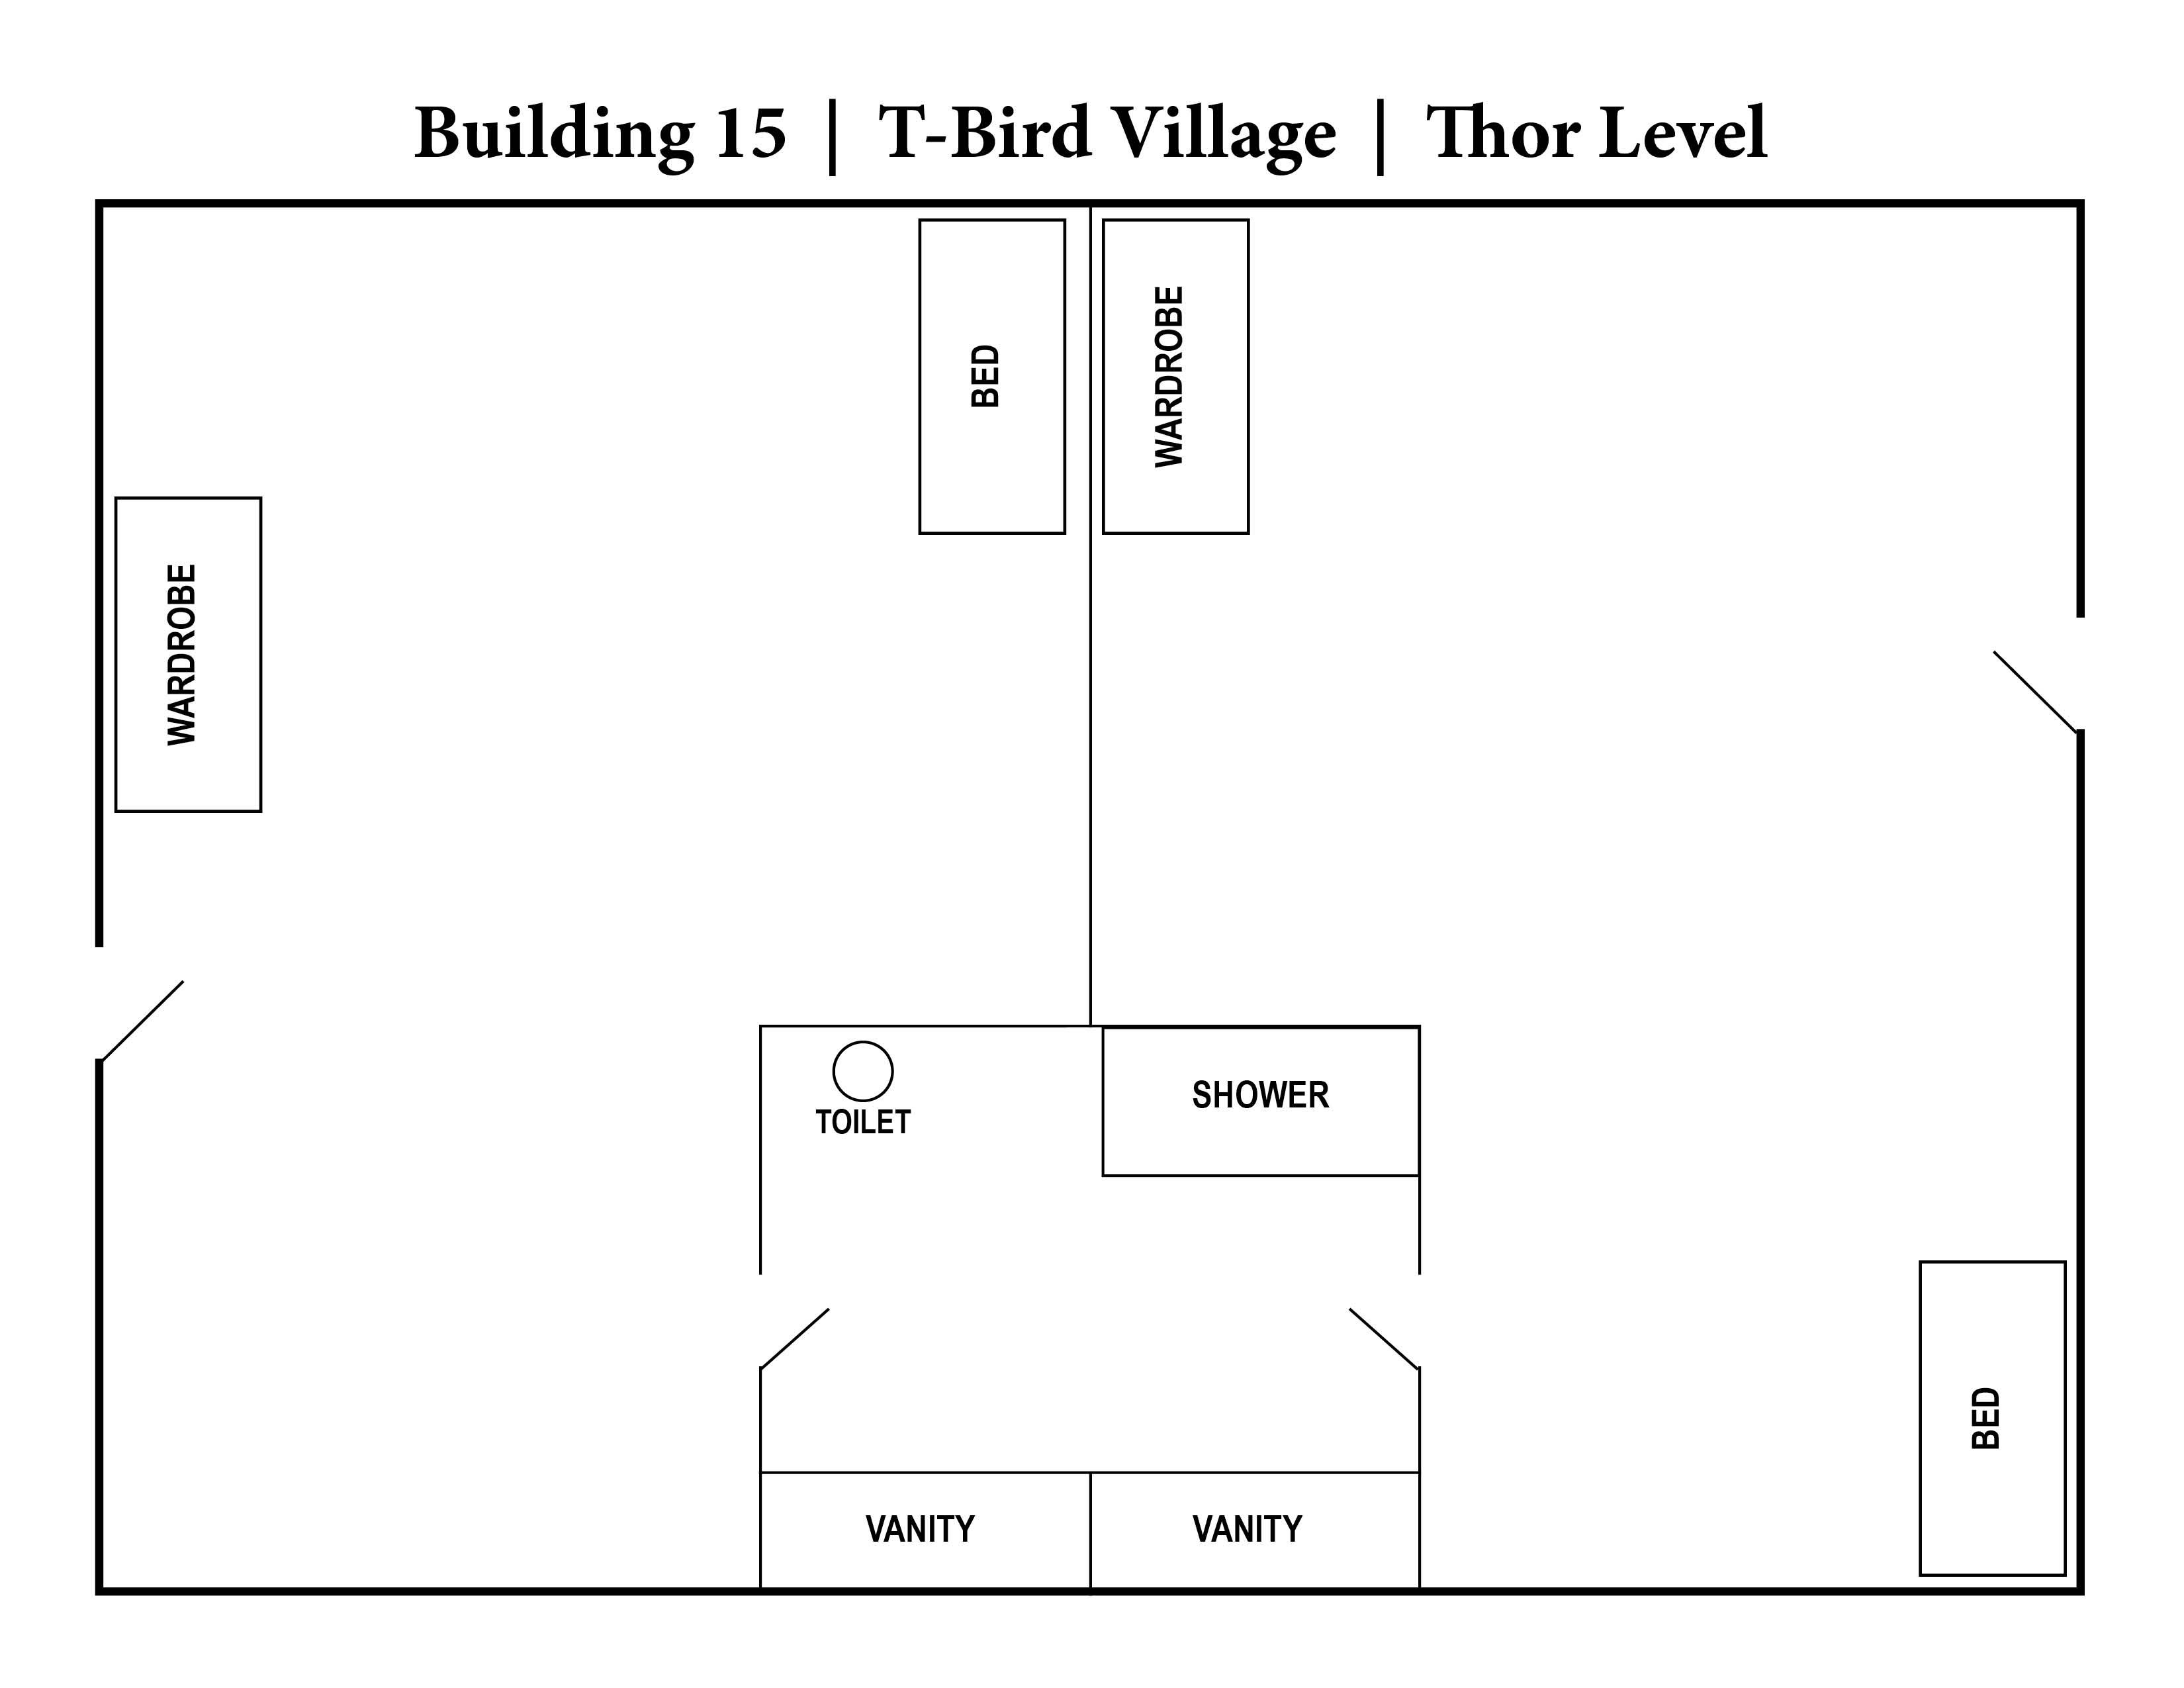 A photo of the layout of Building 15 - Thor level.